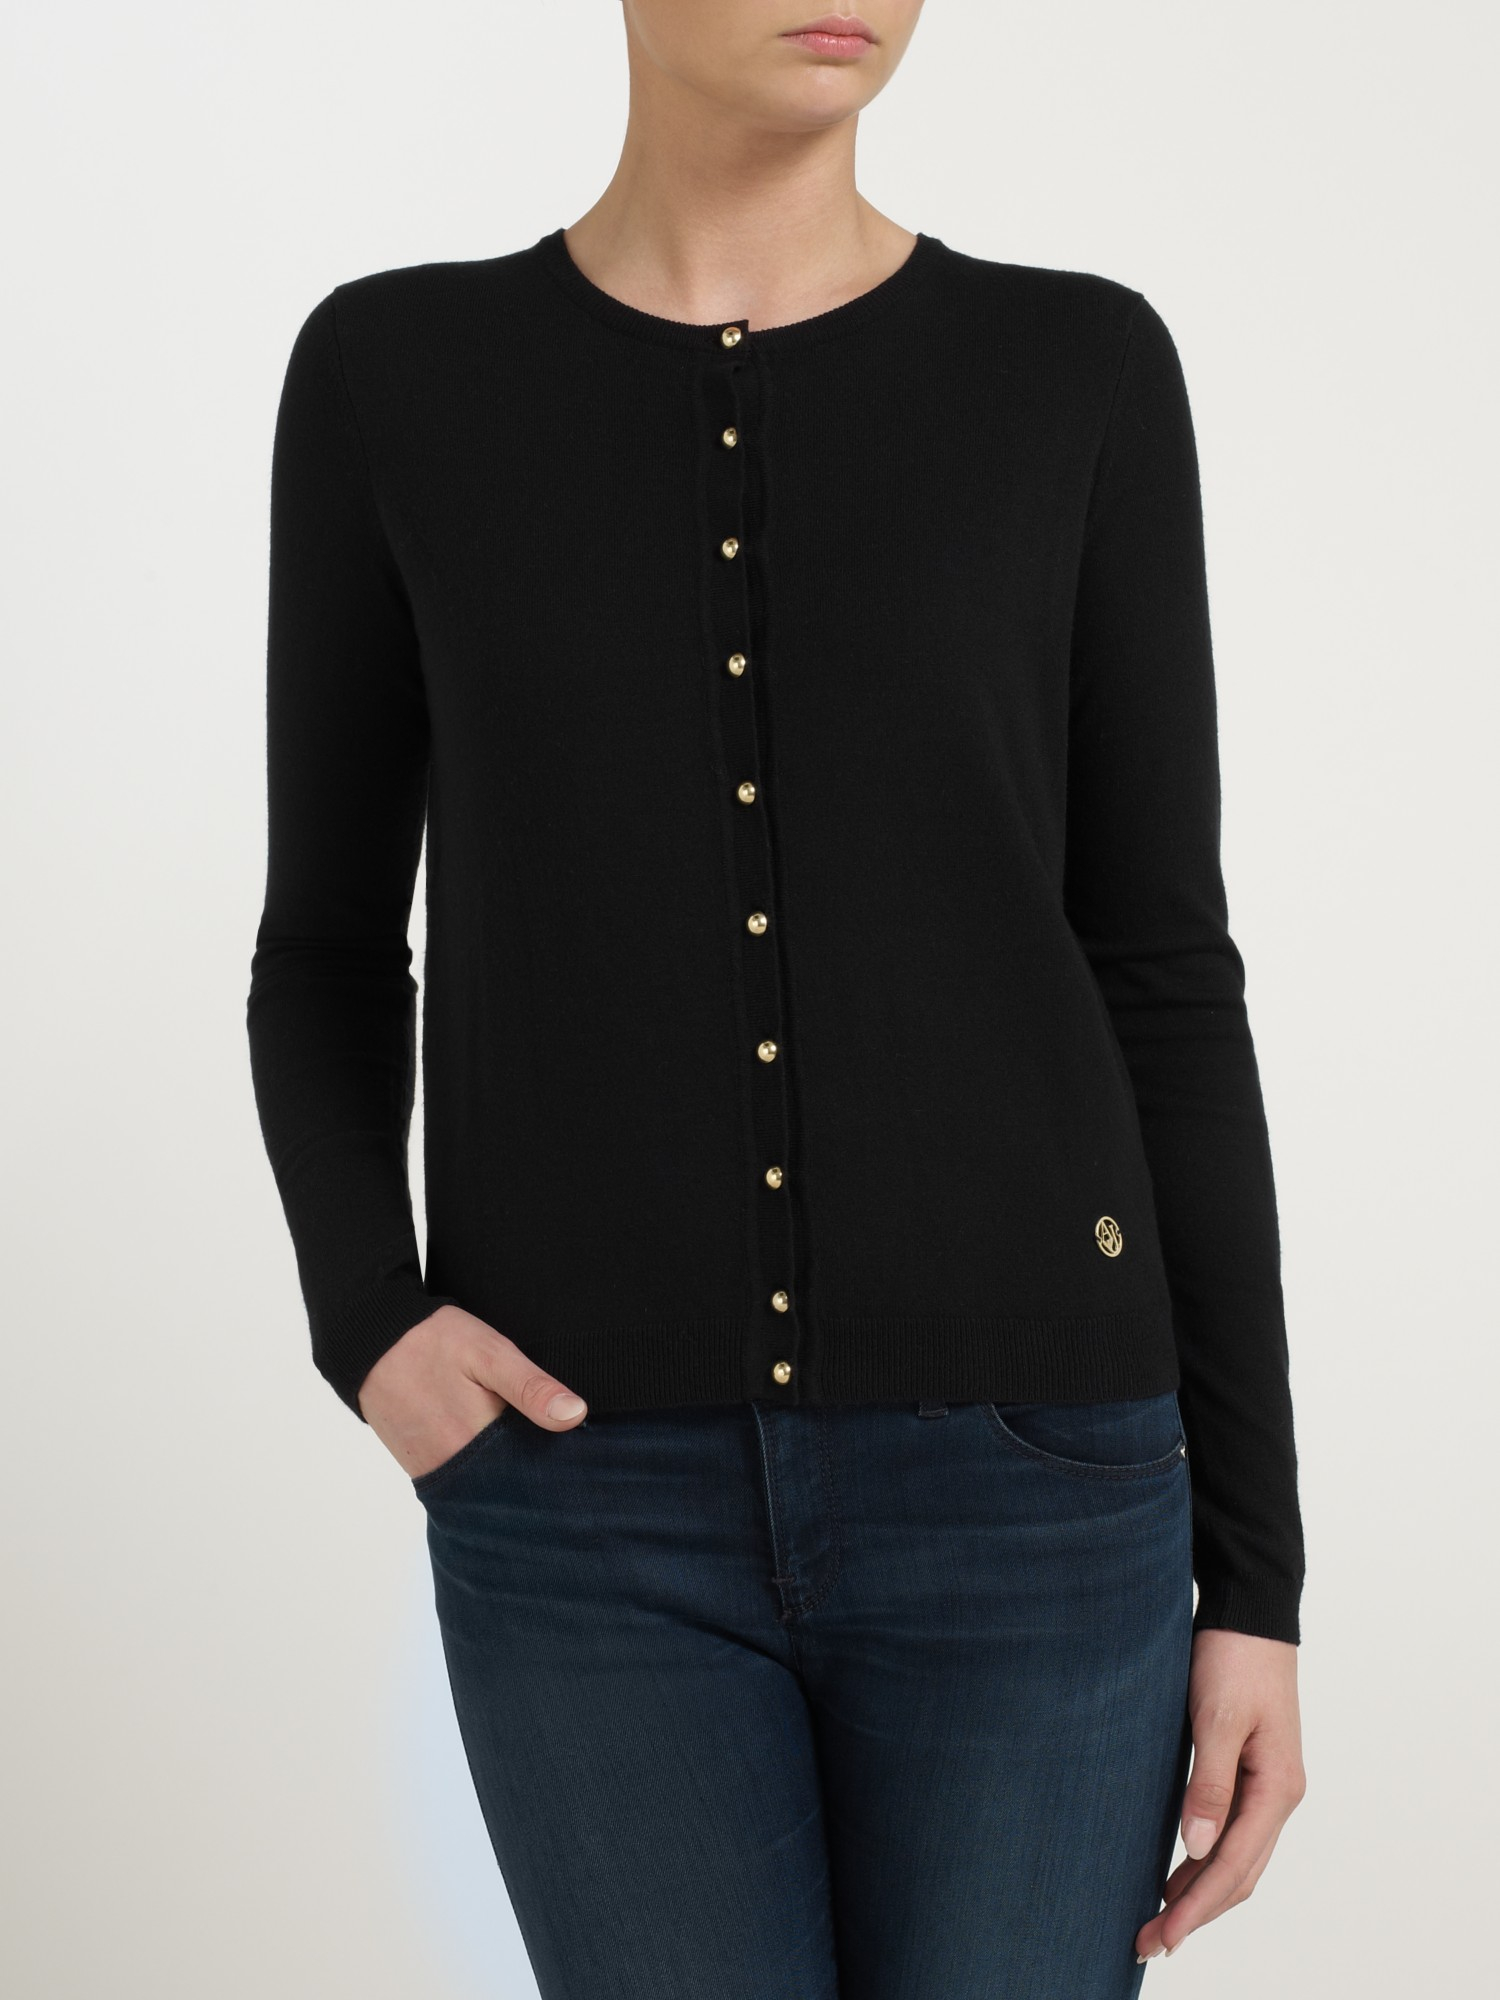 Armani jeans Gold Button Cardigan in Black | Lyst